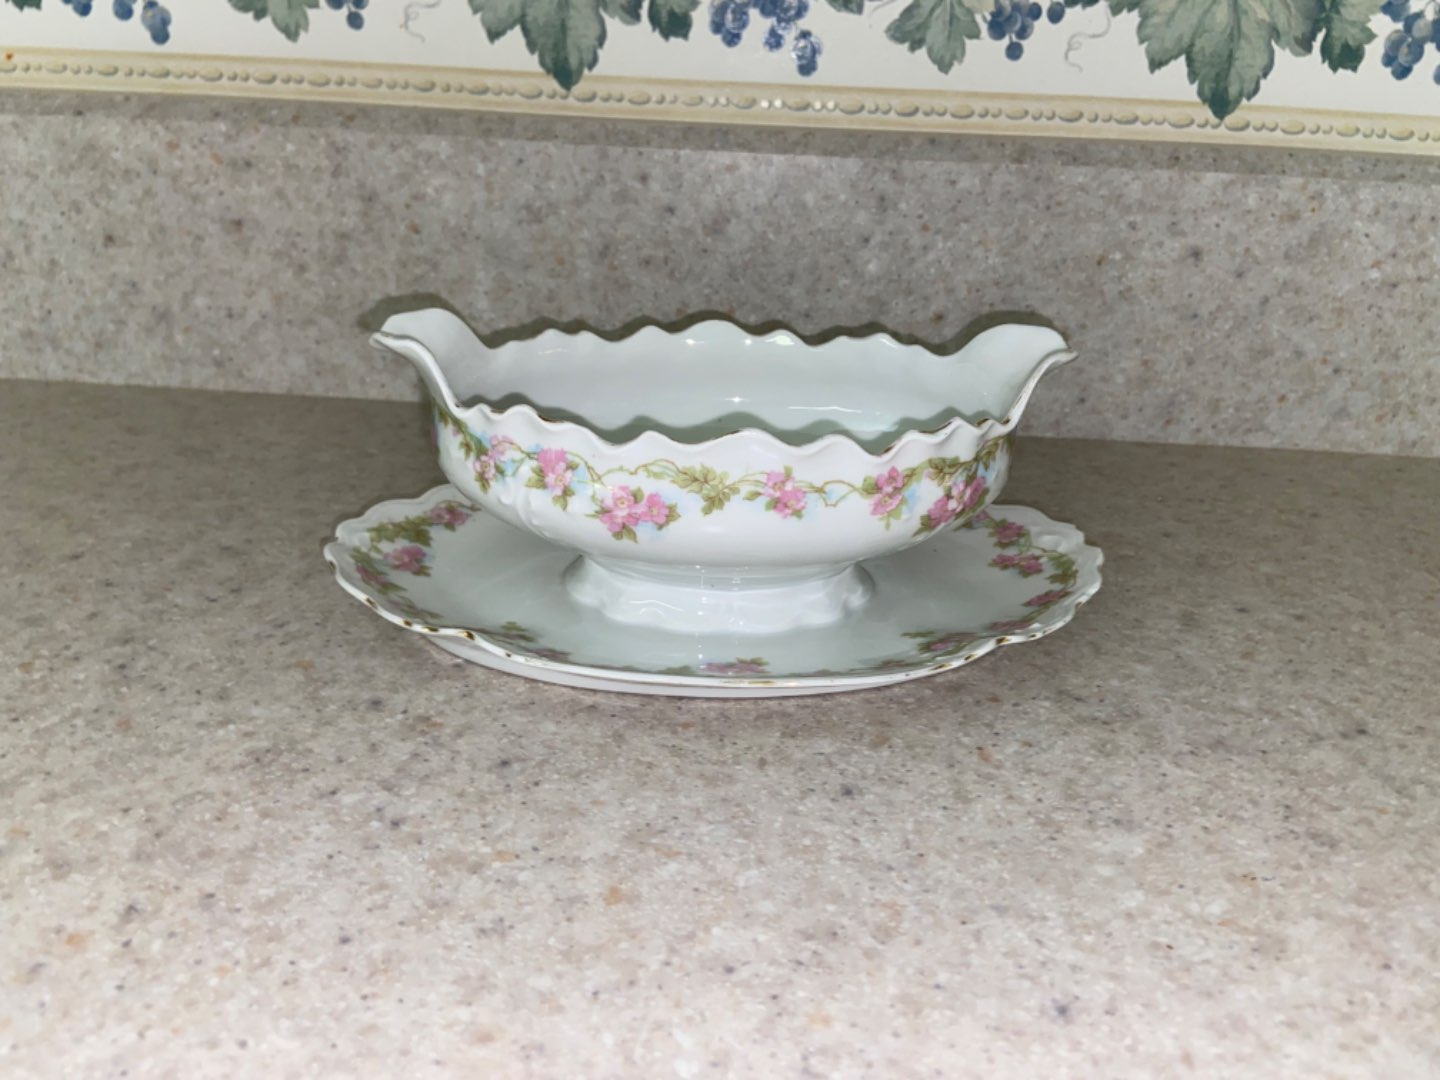 Lot # 245 Antique Habsburg China Gravy Boat on Plate